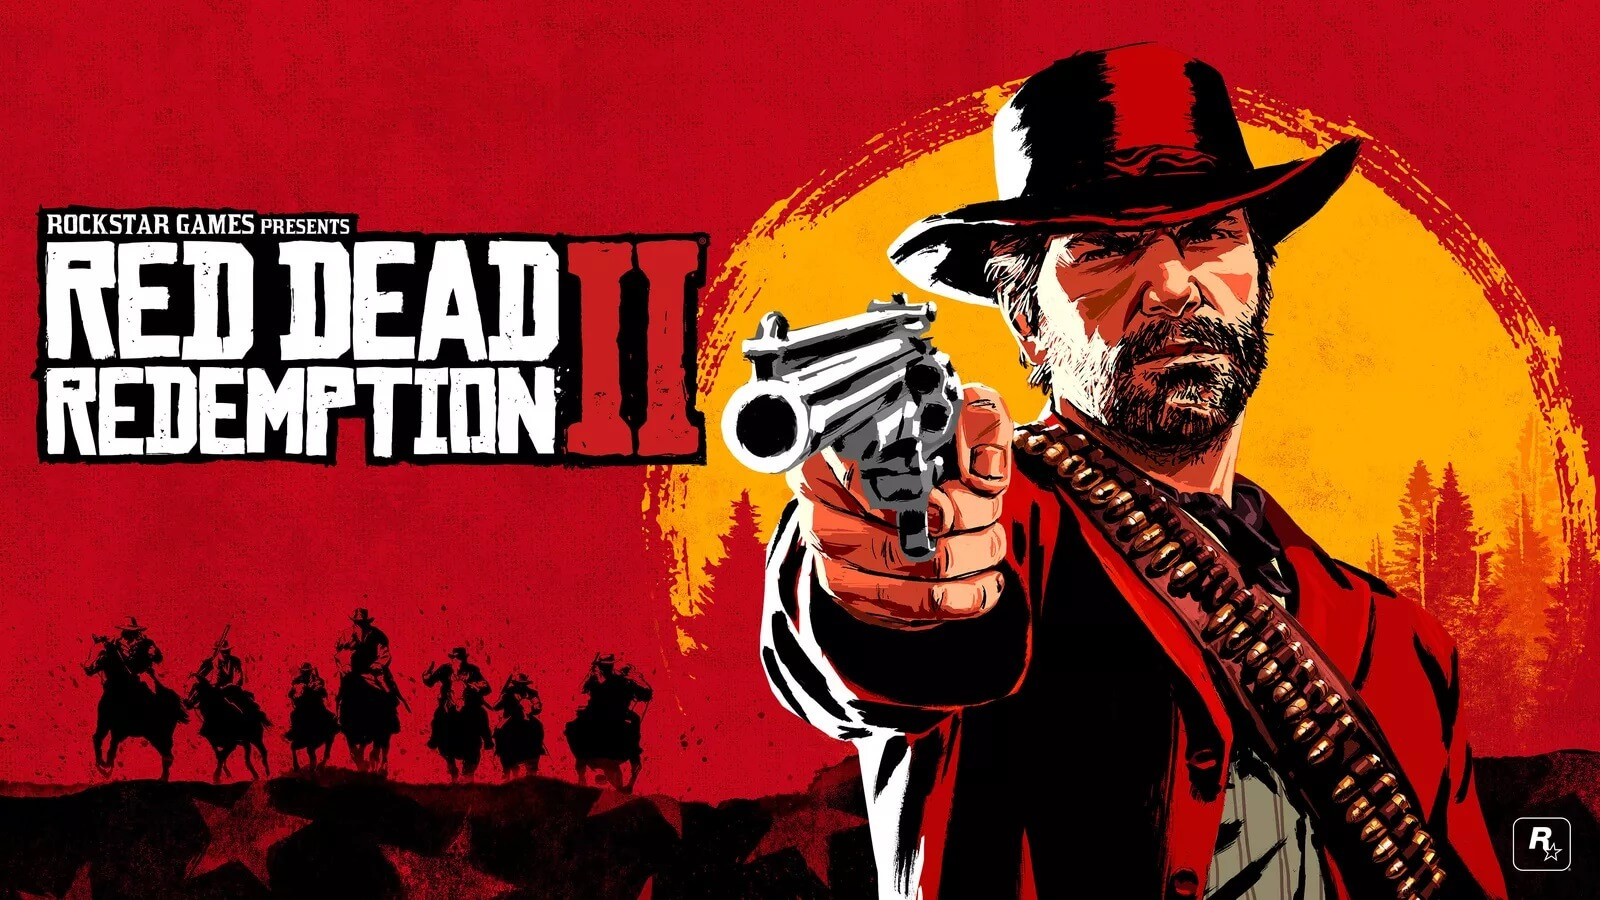 Red Dead Redemption 2 January 21st Update released, adds new content, full patch notes - DSOGaming